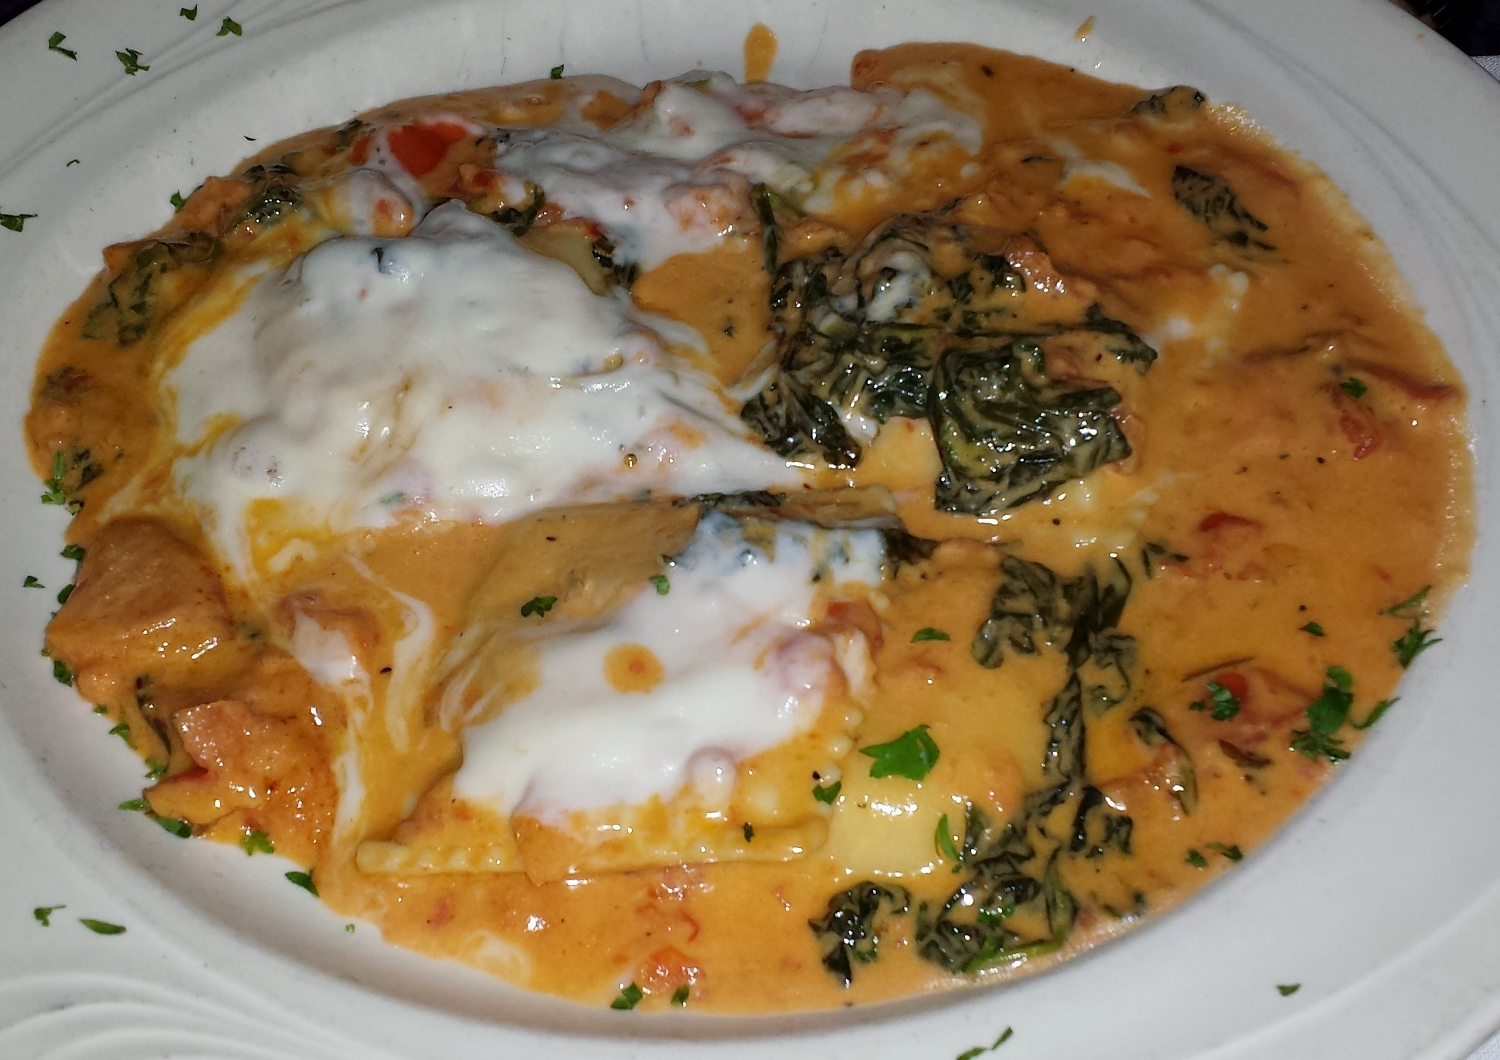 Ravioli Firenze: the pasta is covered with a creamy sauce with fresh spinach and mozzarella